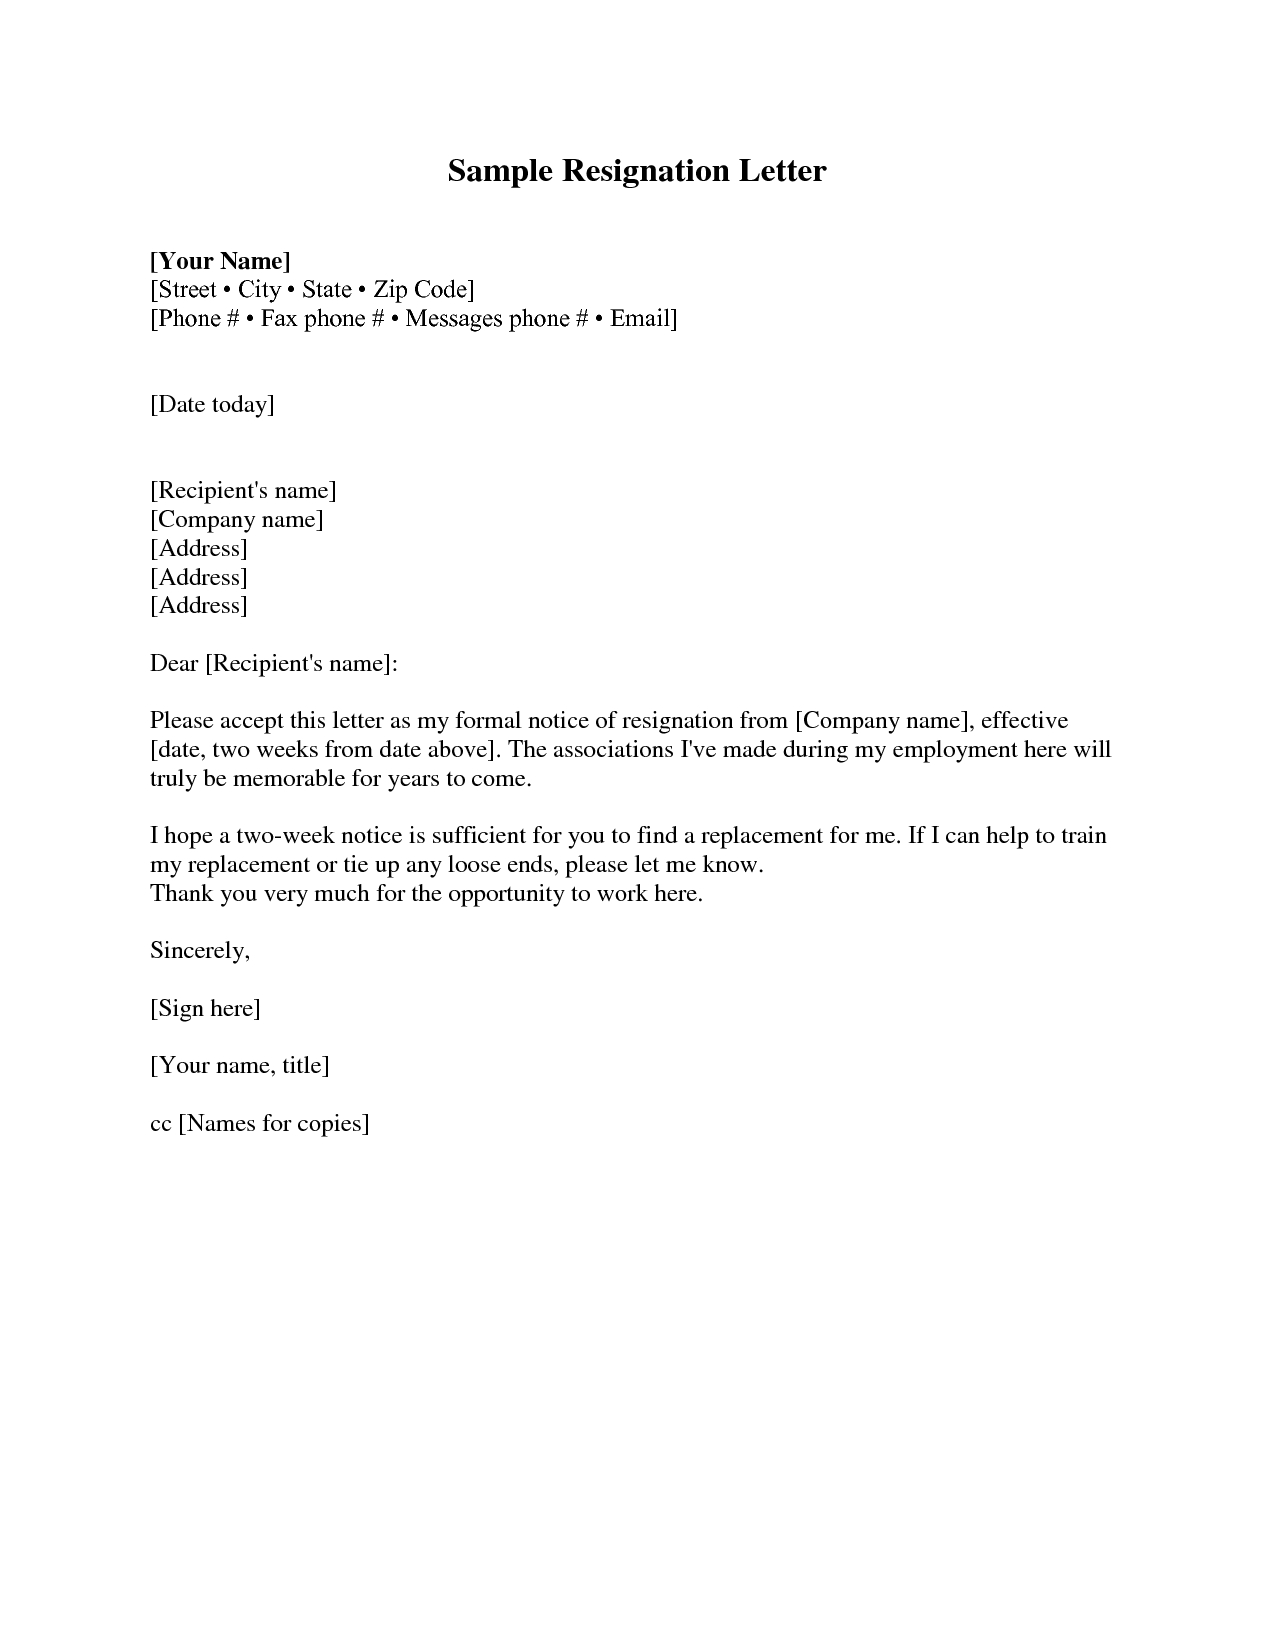 Writing A Resignation Letter Template - Resignation Letter Sample 2 Weeks Notice Free2img